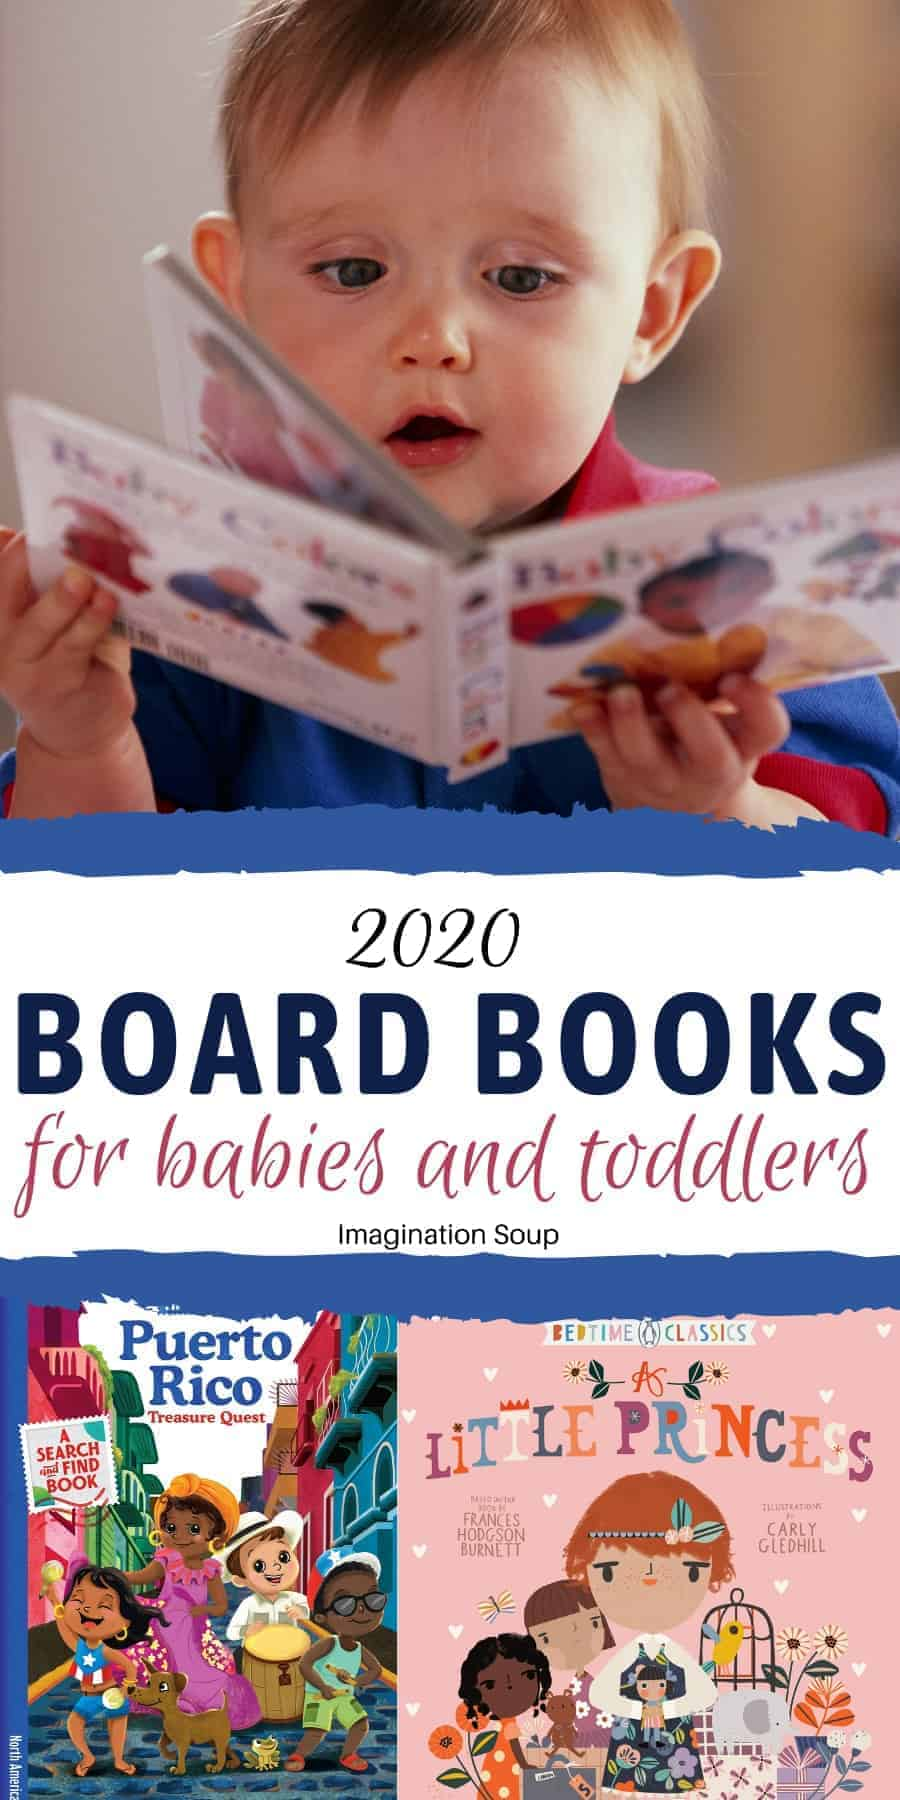 2020 board books for babies and toddlers